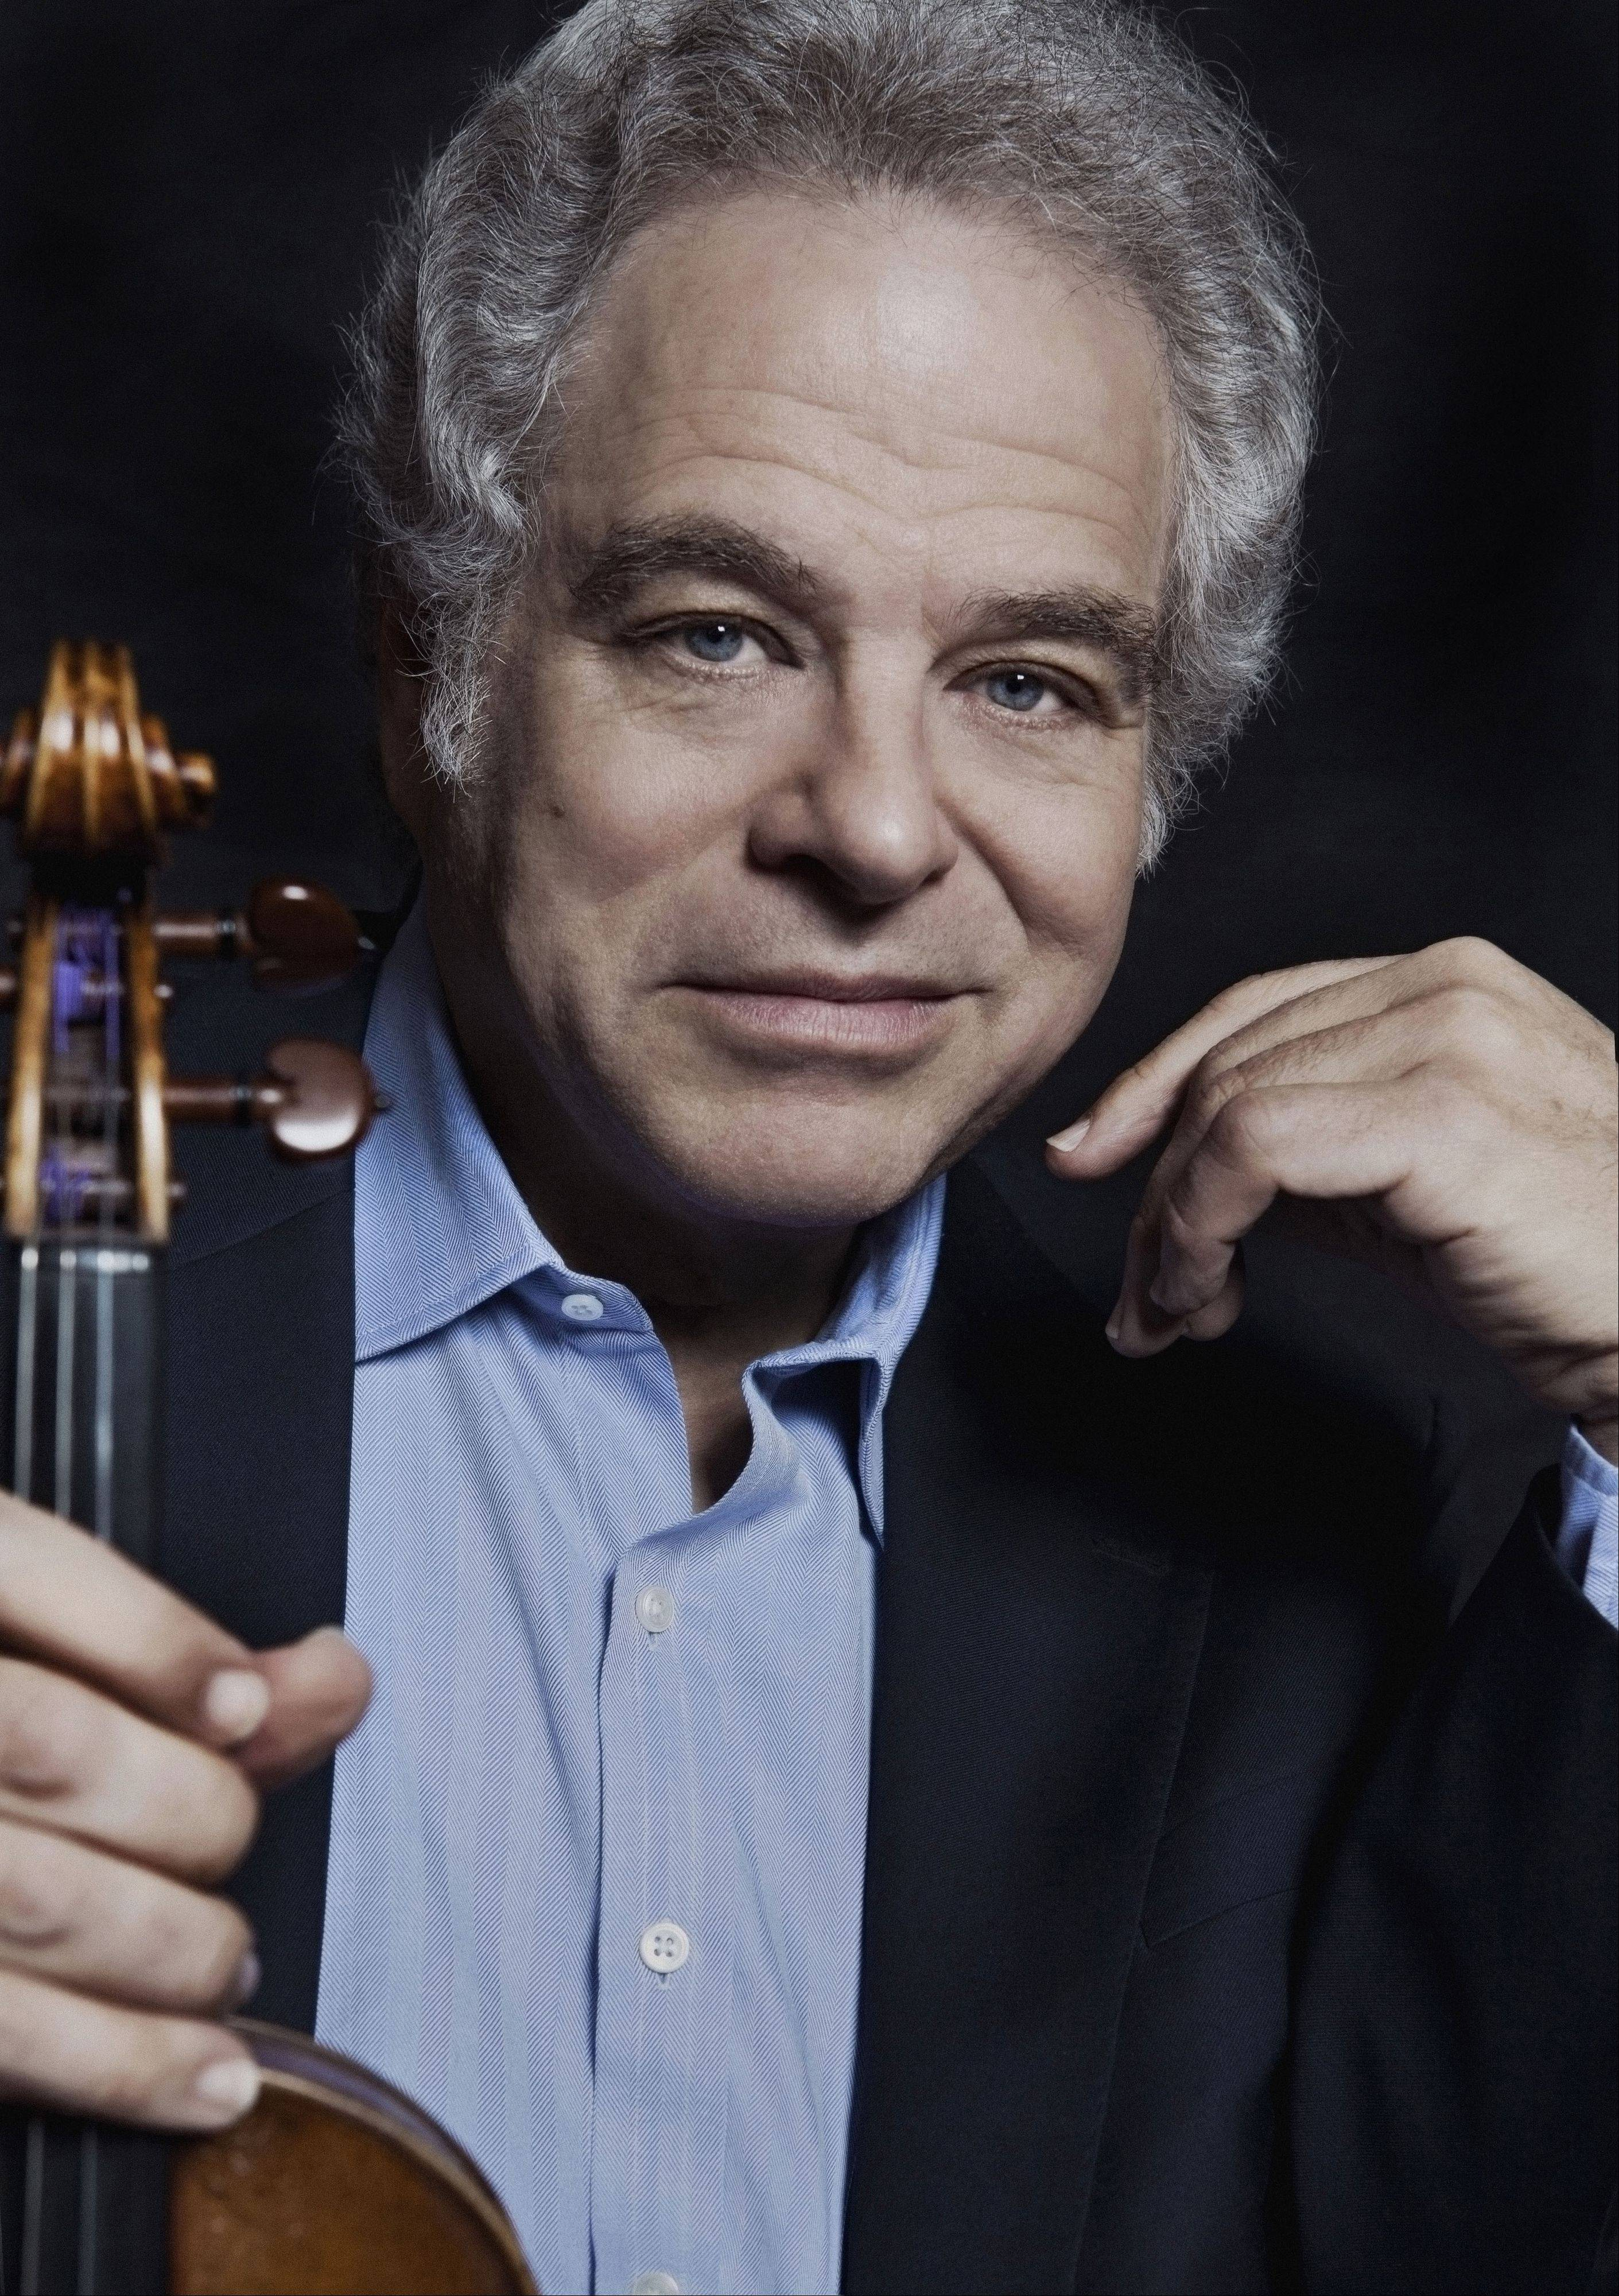 Tickets are now on sale for renowned violinist Itzhak Perlman in concert at the Lyric Opera of Chicago.